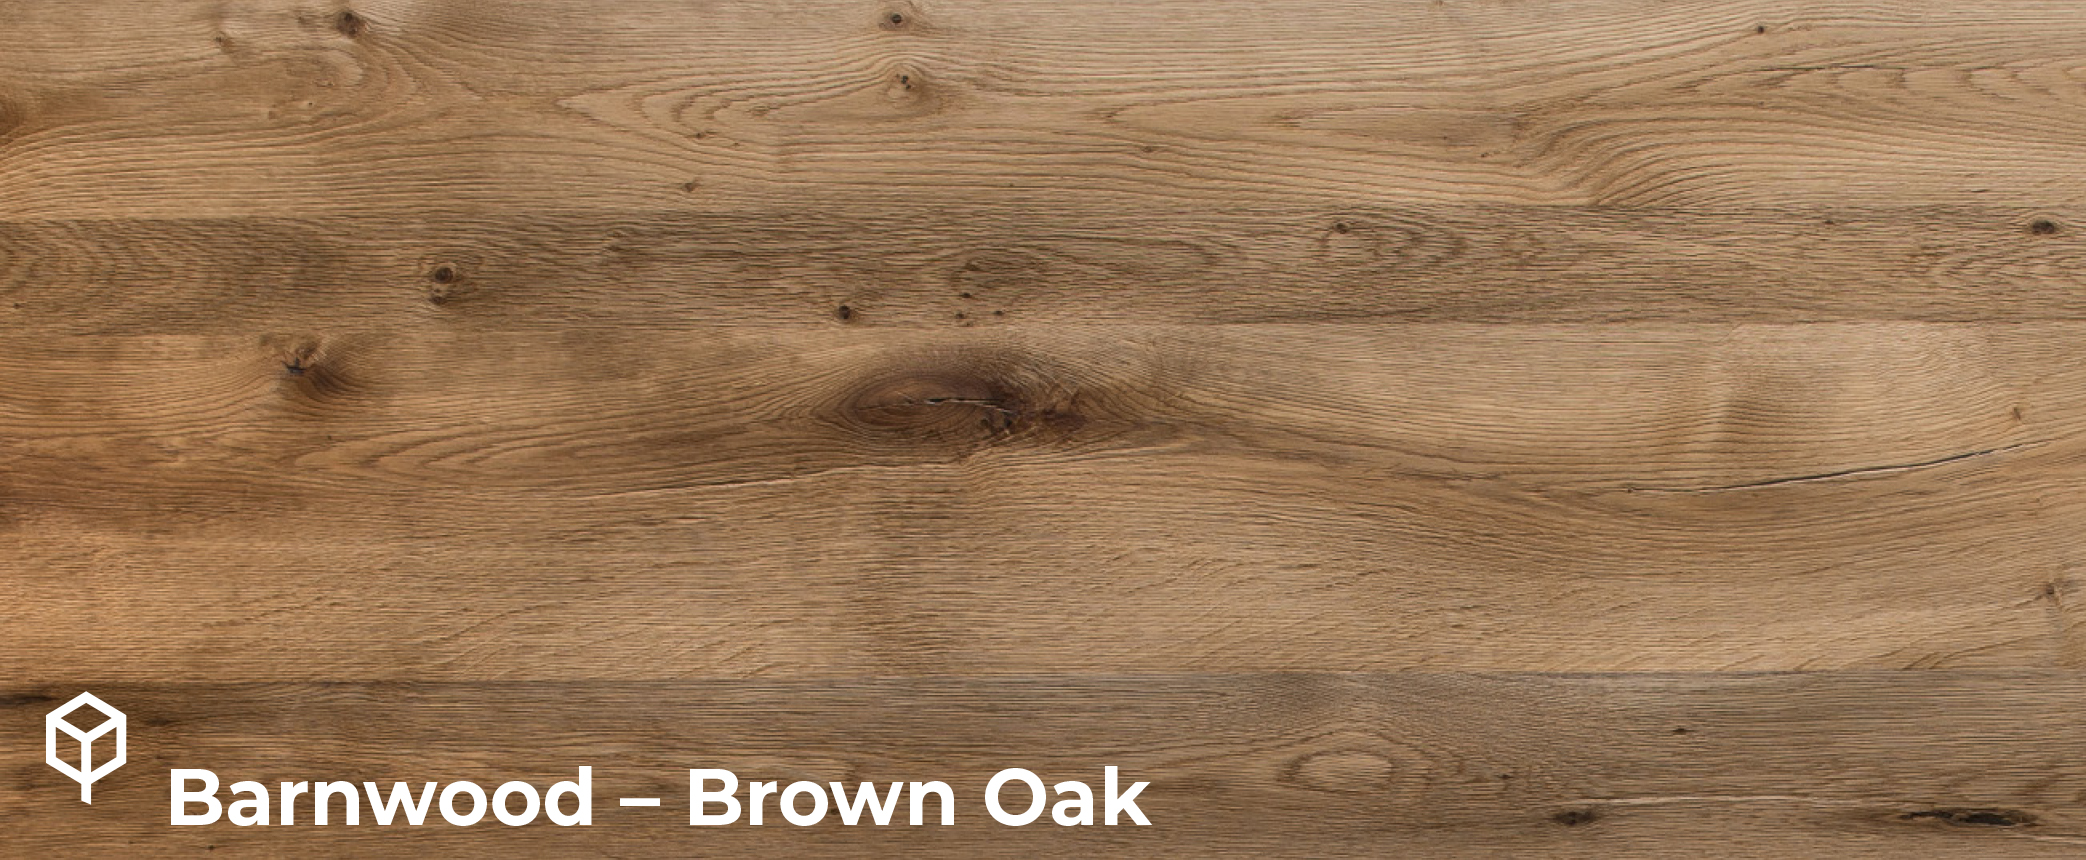 Barnwood Brown Oak veneer